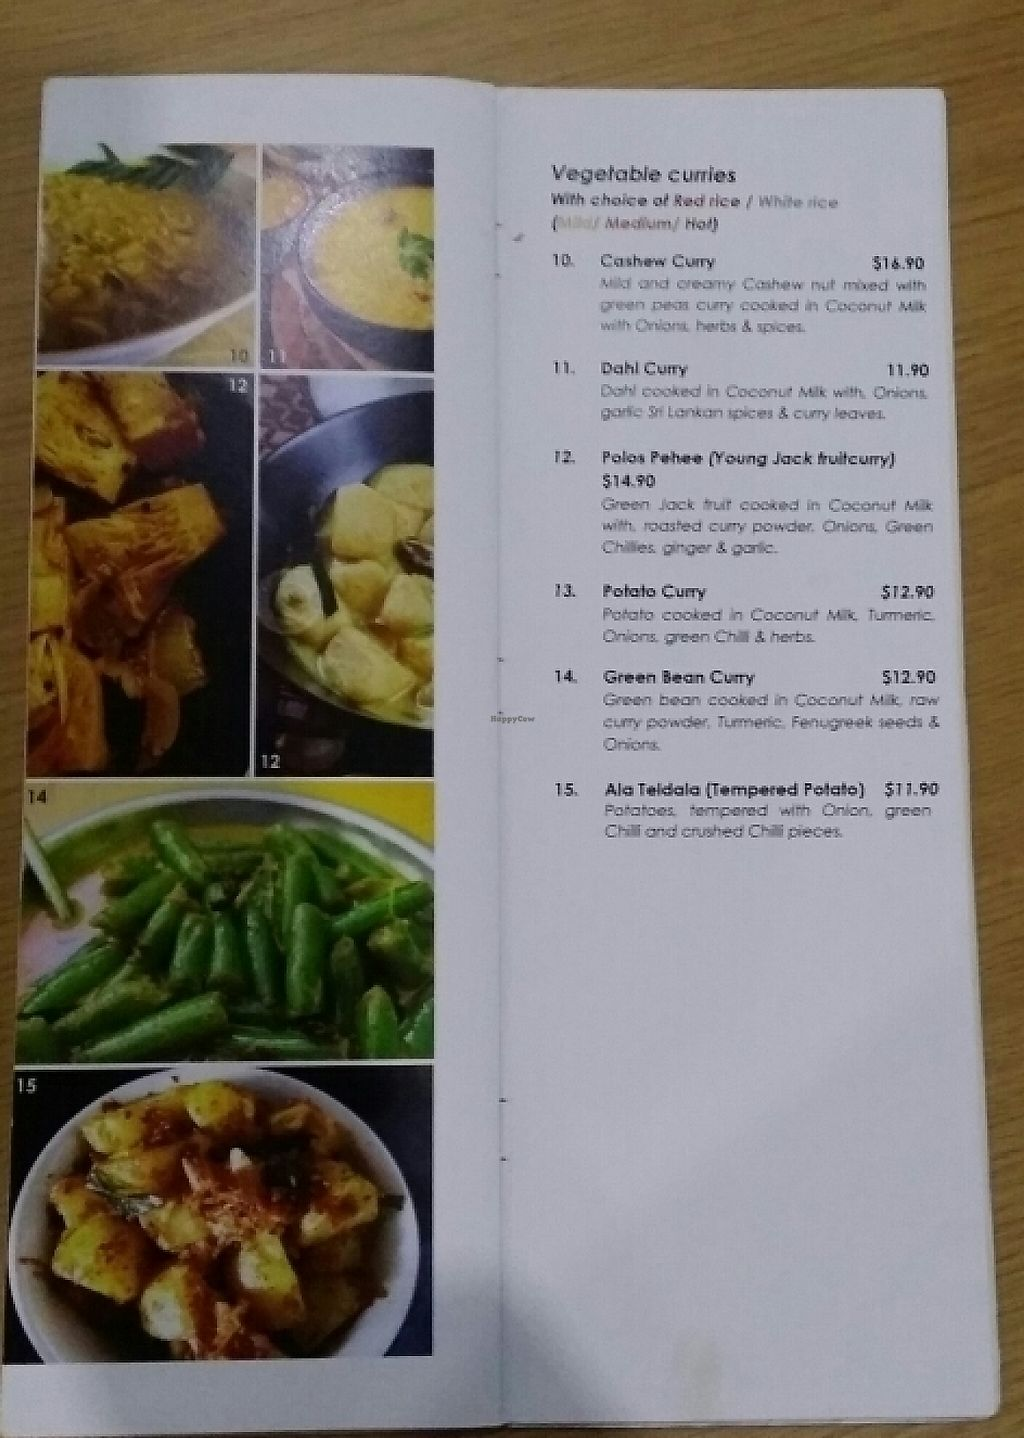 """Photo of CLOSED: Ceylon Dine in Style  by <a href=""""/members/profile/Mike%20Munsie"""">Mike Munsie</a> <br/>vego menu 1 <br/> May 11, 2017  - <a href='/contact/abuse/image/90467/257774'>Report</a>"""